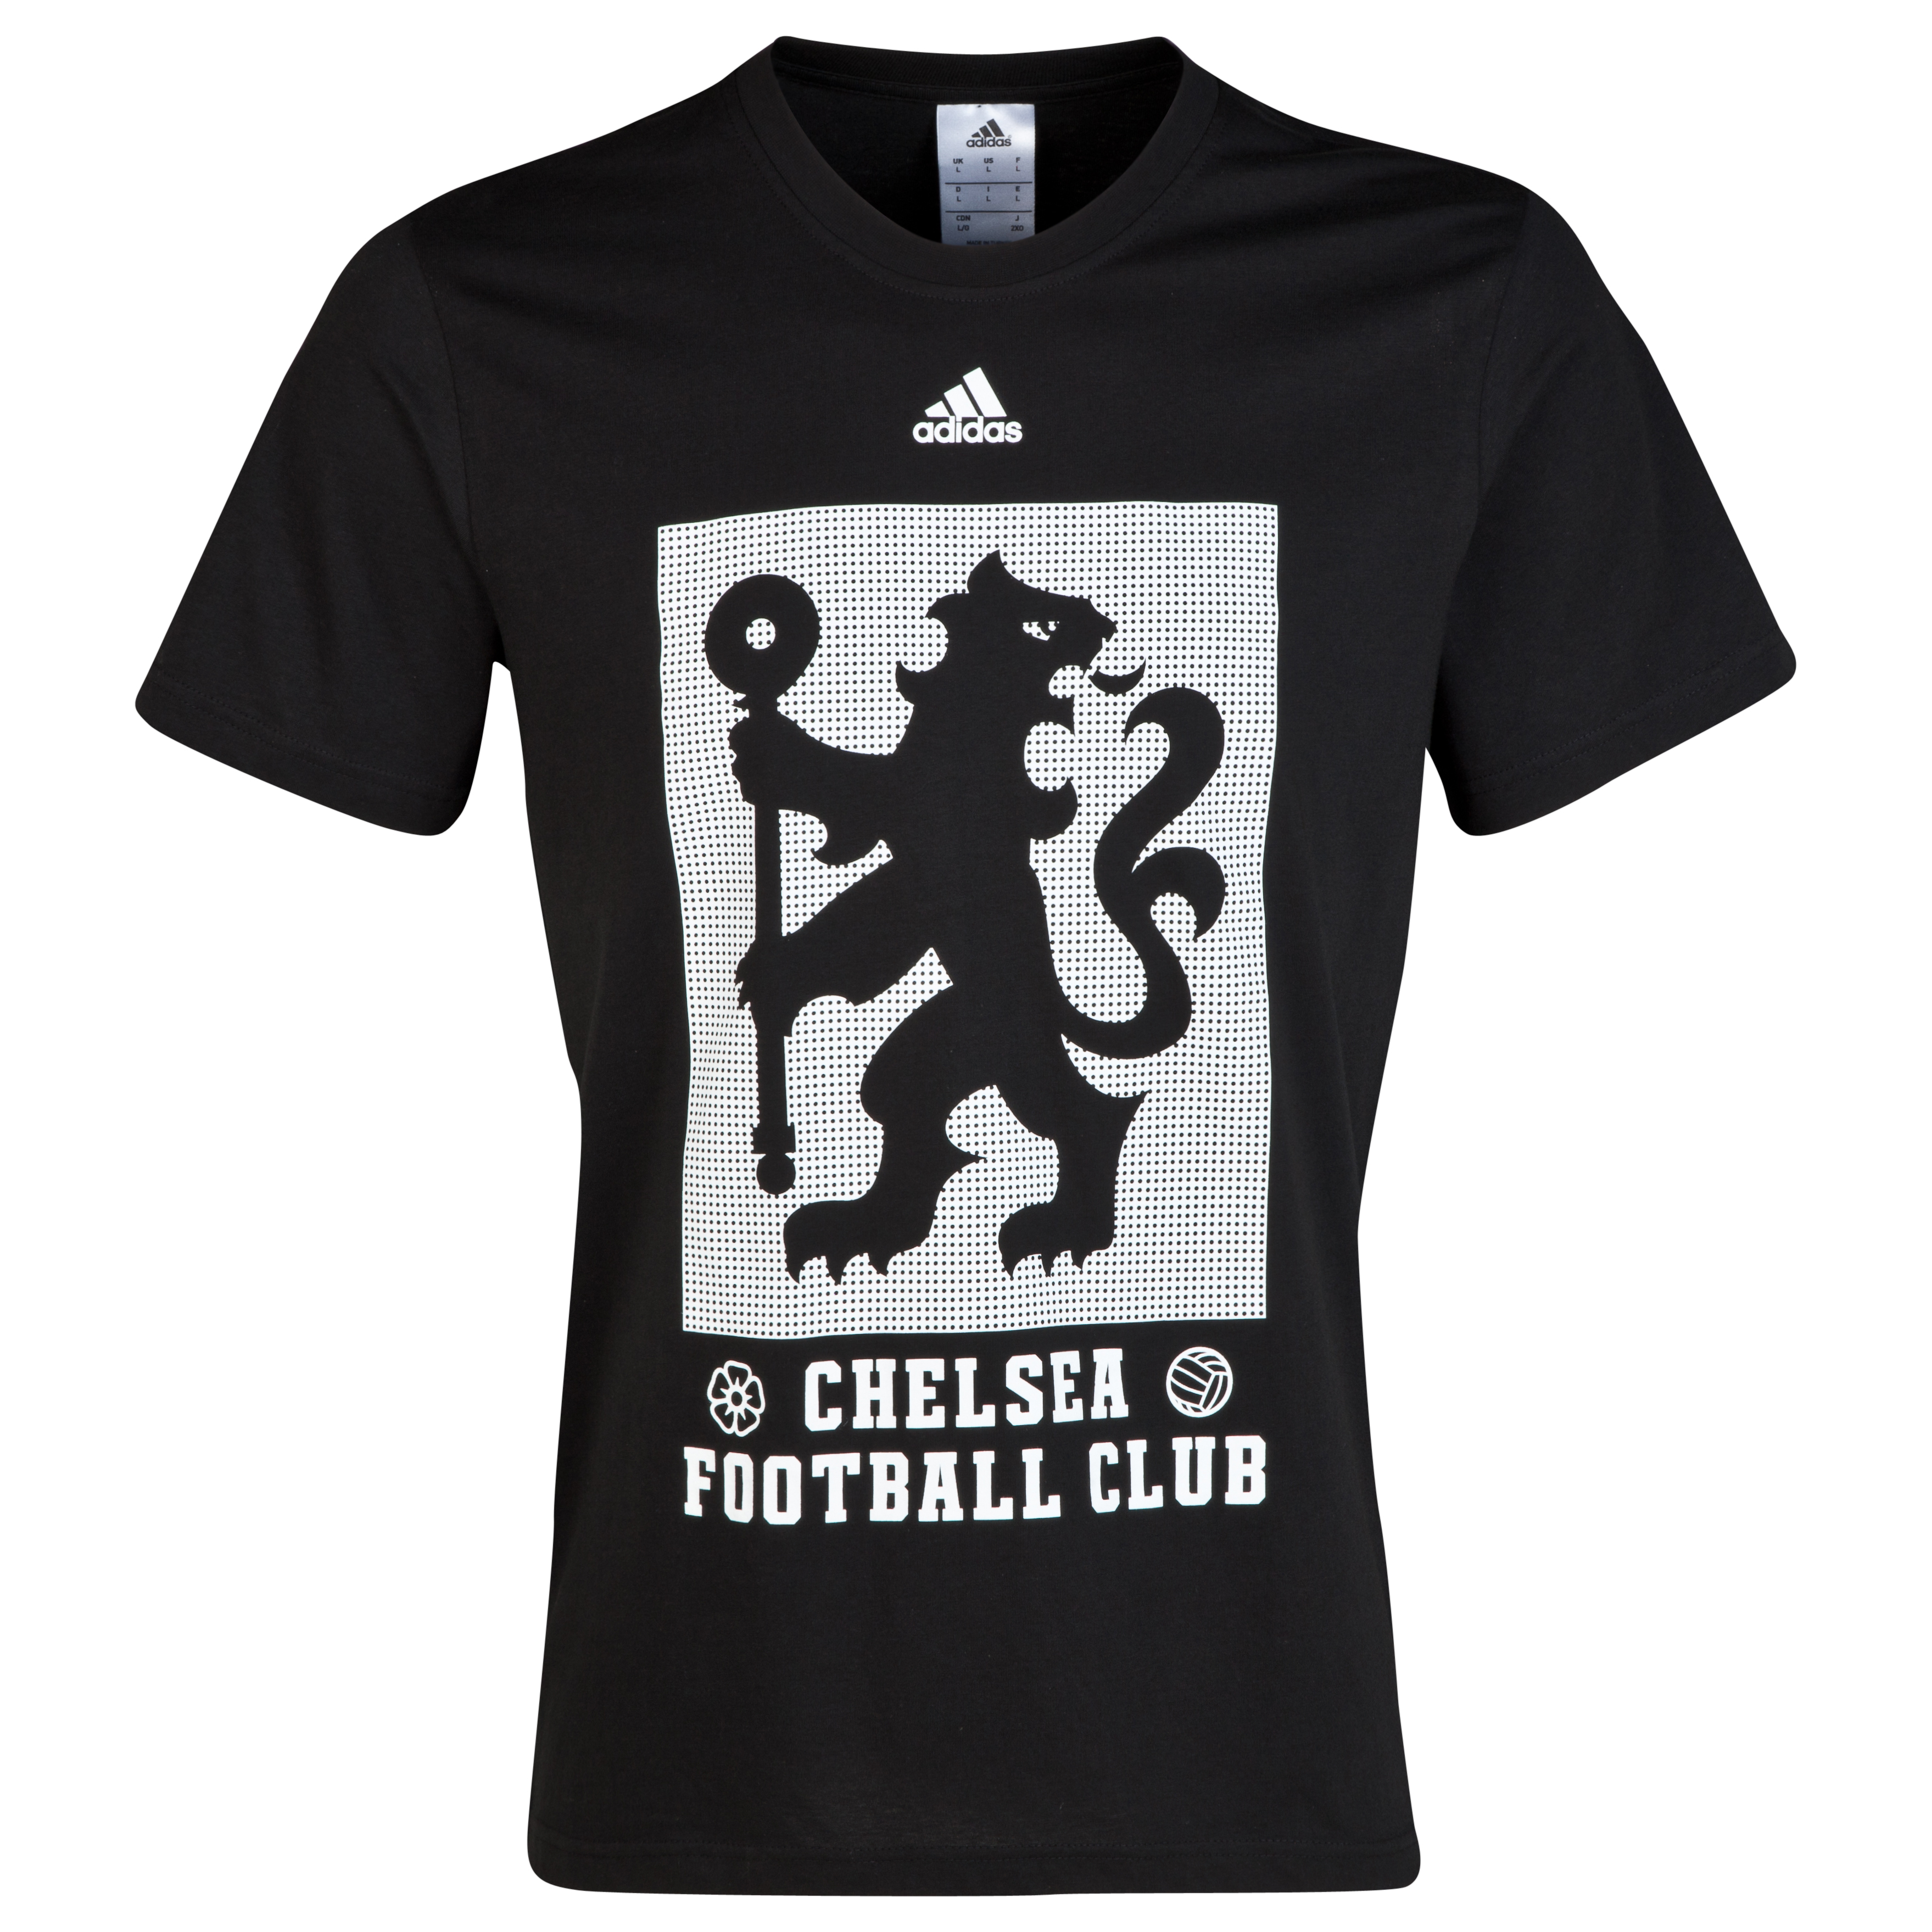 Chelsea Adidas Large Lion T-Shirt Black